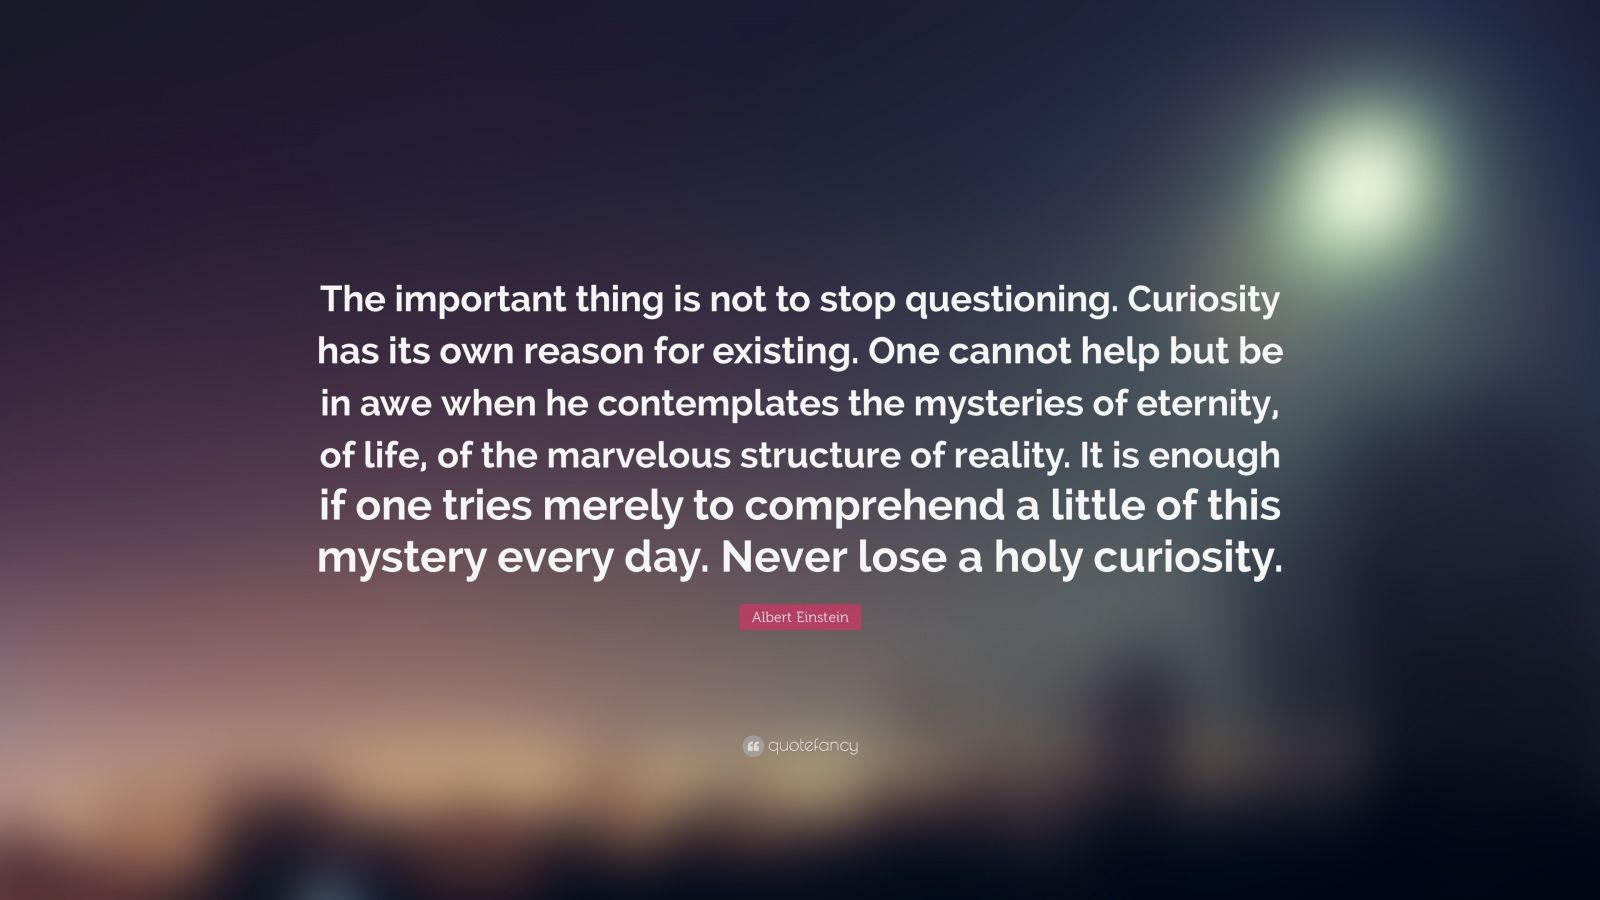 "Albert Einstein Quote: ""The important thing is not to stop questioning. Curiosity has its own reason for existing. One cannot help but be in awe when he contemplates the mysteries of eternity, of life, of the marvelous structure of reality. It is enough if one tries merely to comprehend a little of this mystery every day. Never lose a holy curiosity."""